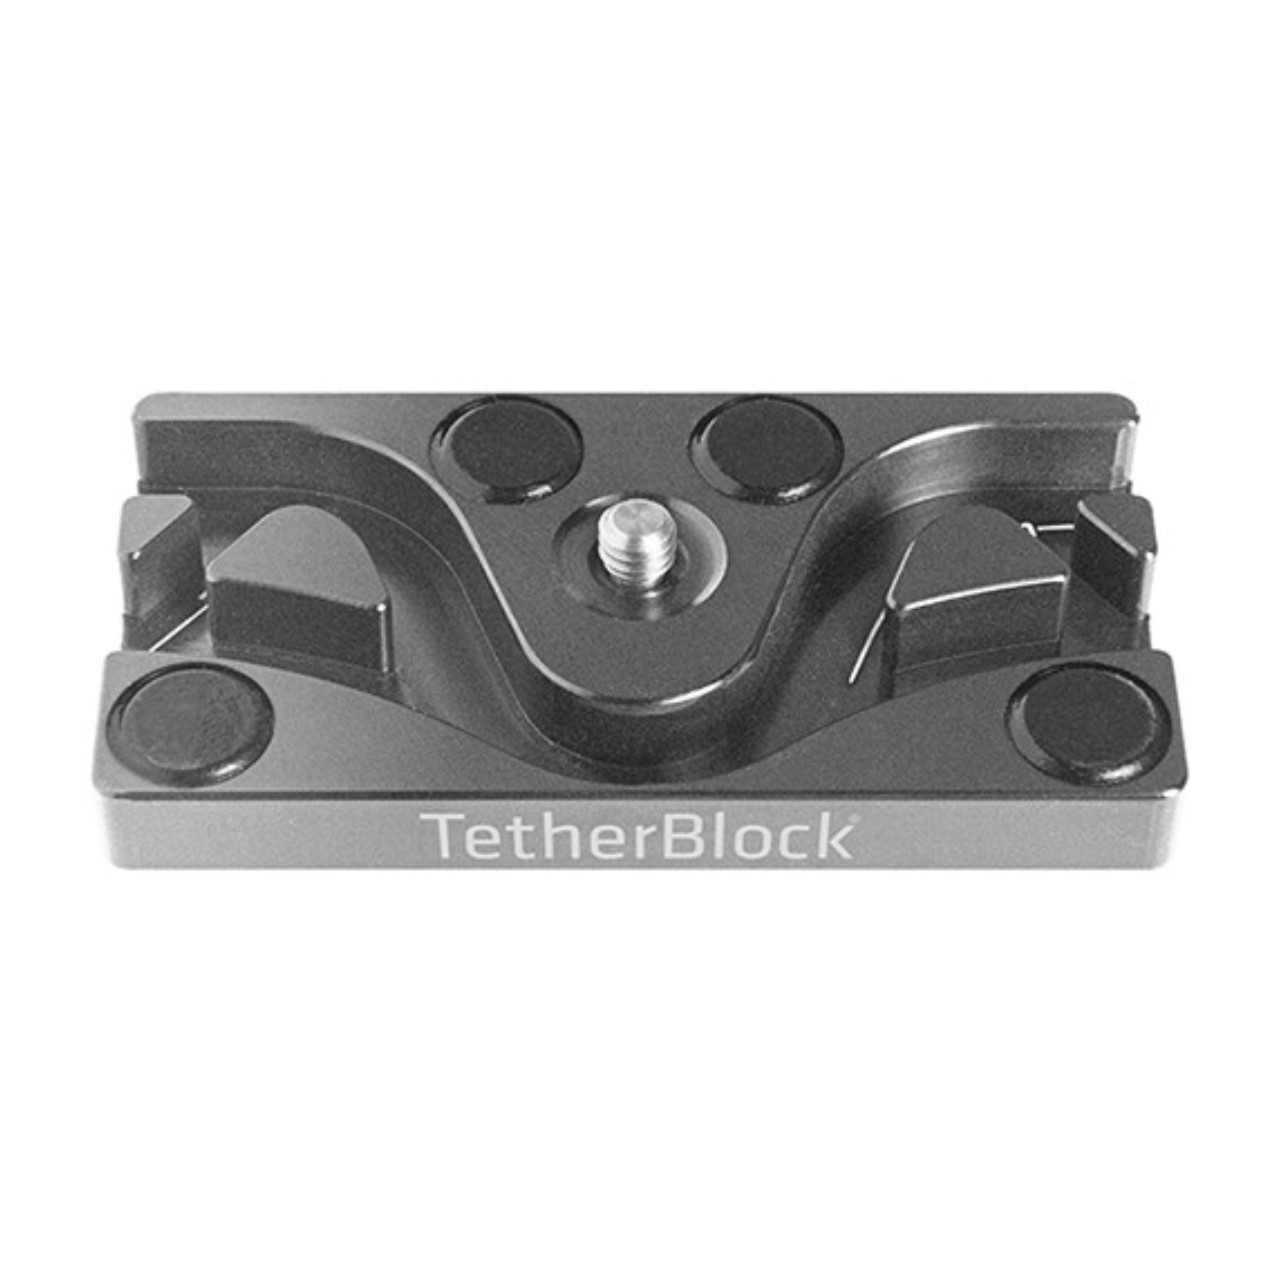 Tetherblock Mc Multi Cable Mounting Plate Pro Video Cabel & Accessories